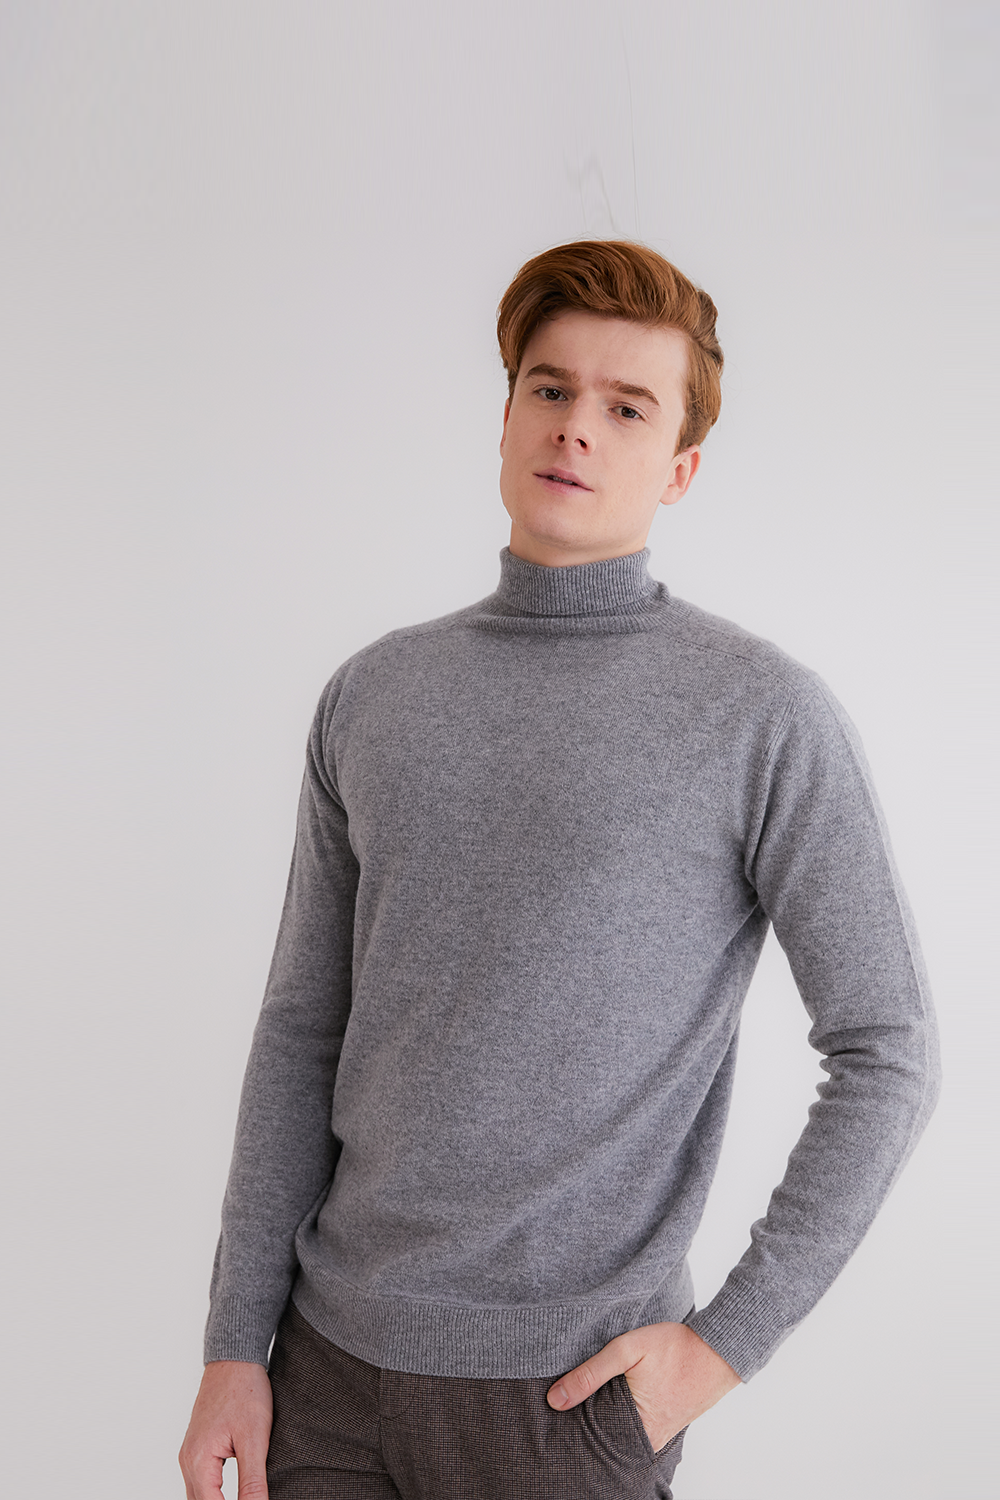 Pure cashmere100 turtleneck sweater by whole-garment knitting - Light gray (인기 상품)